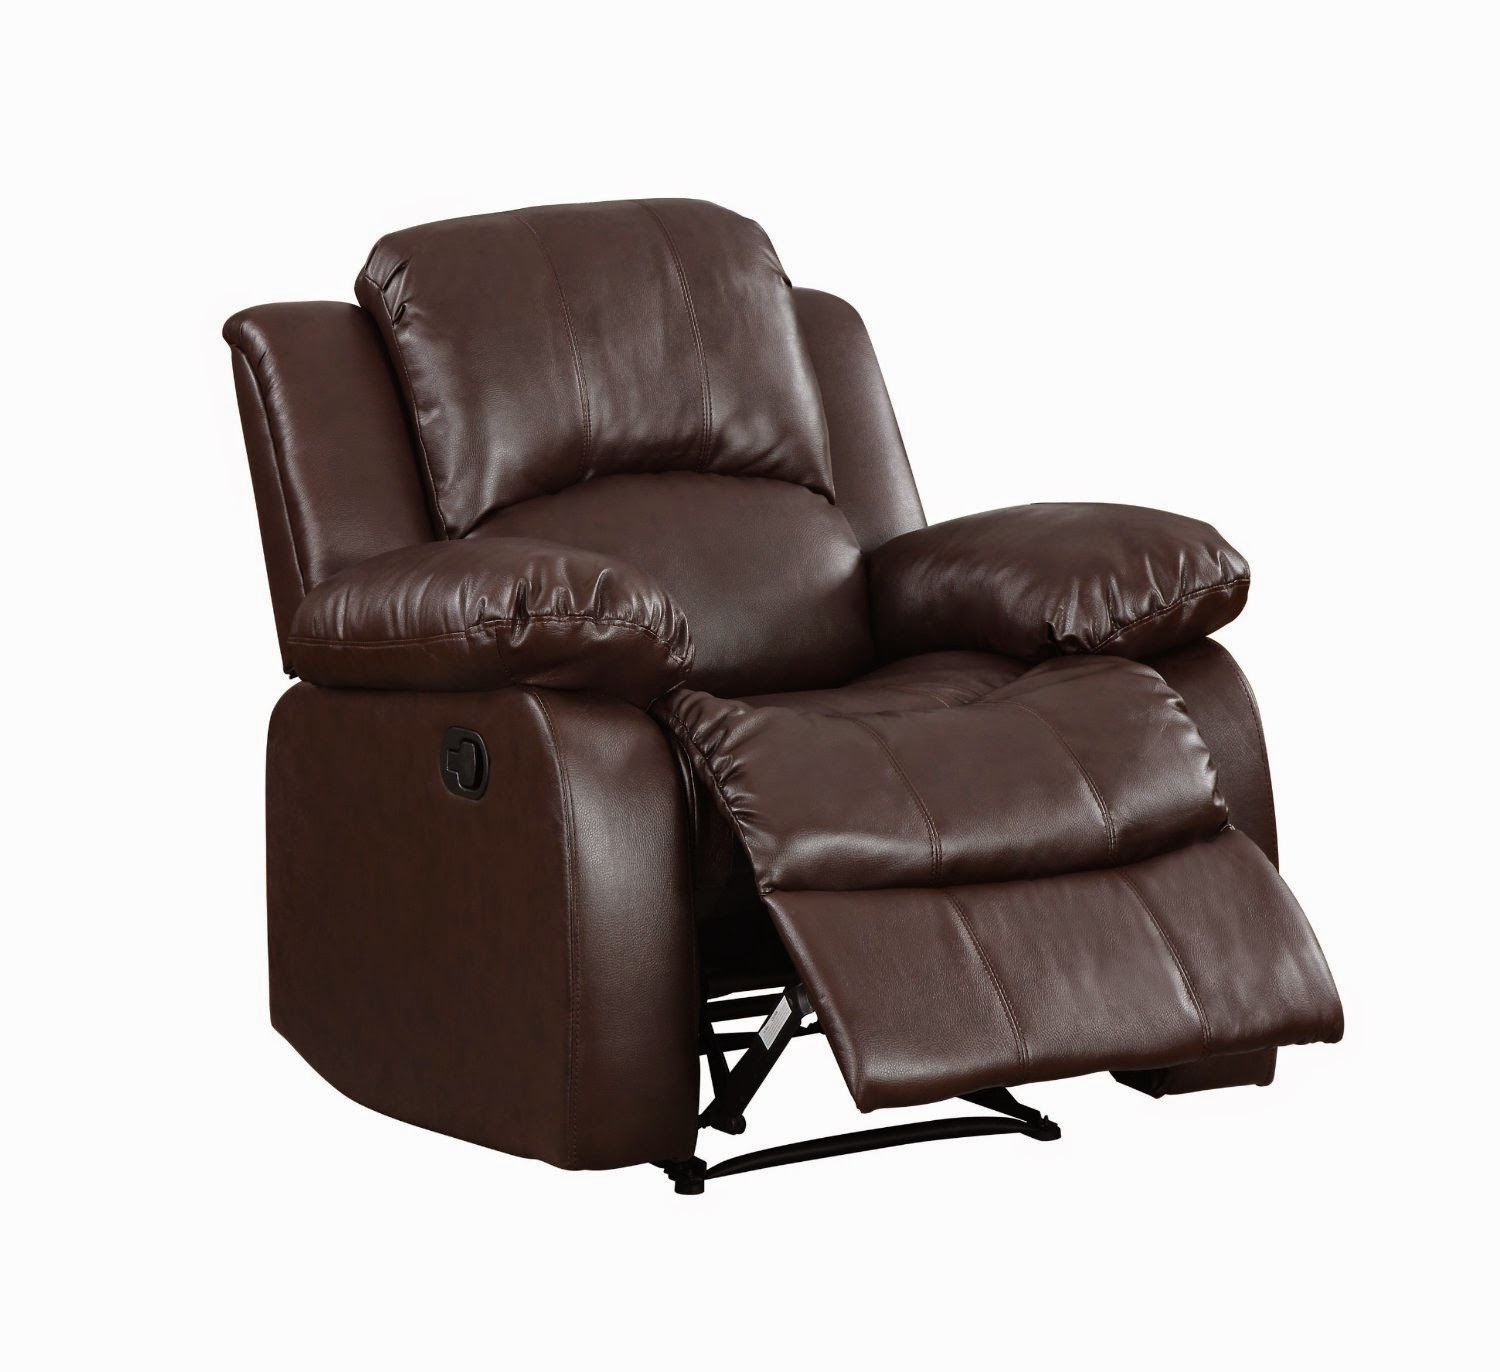 Best Leather Reclining Sofa Brands Reviews: Costco Leather ...